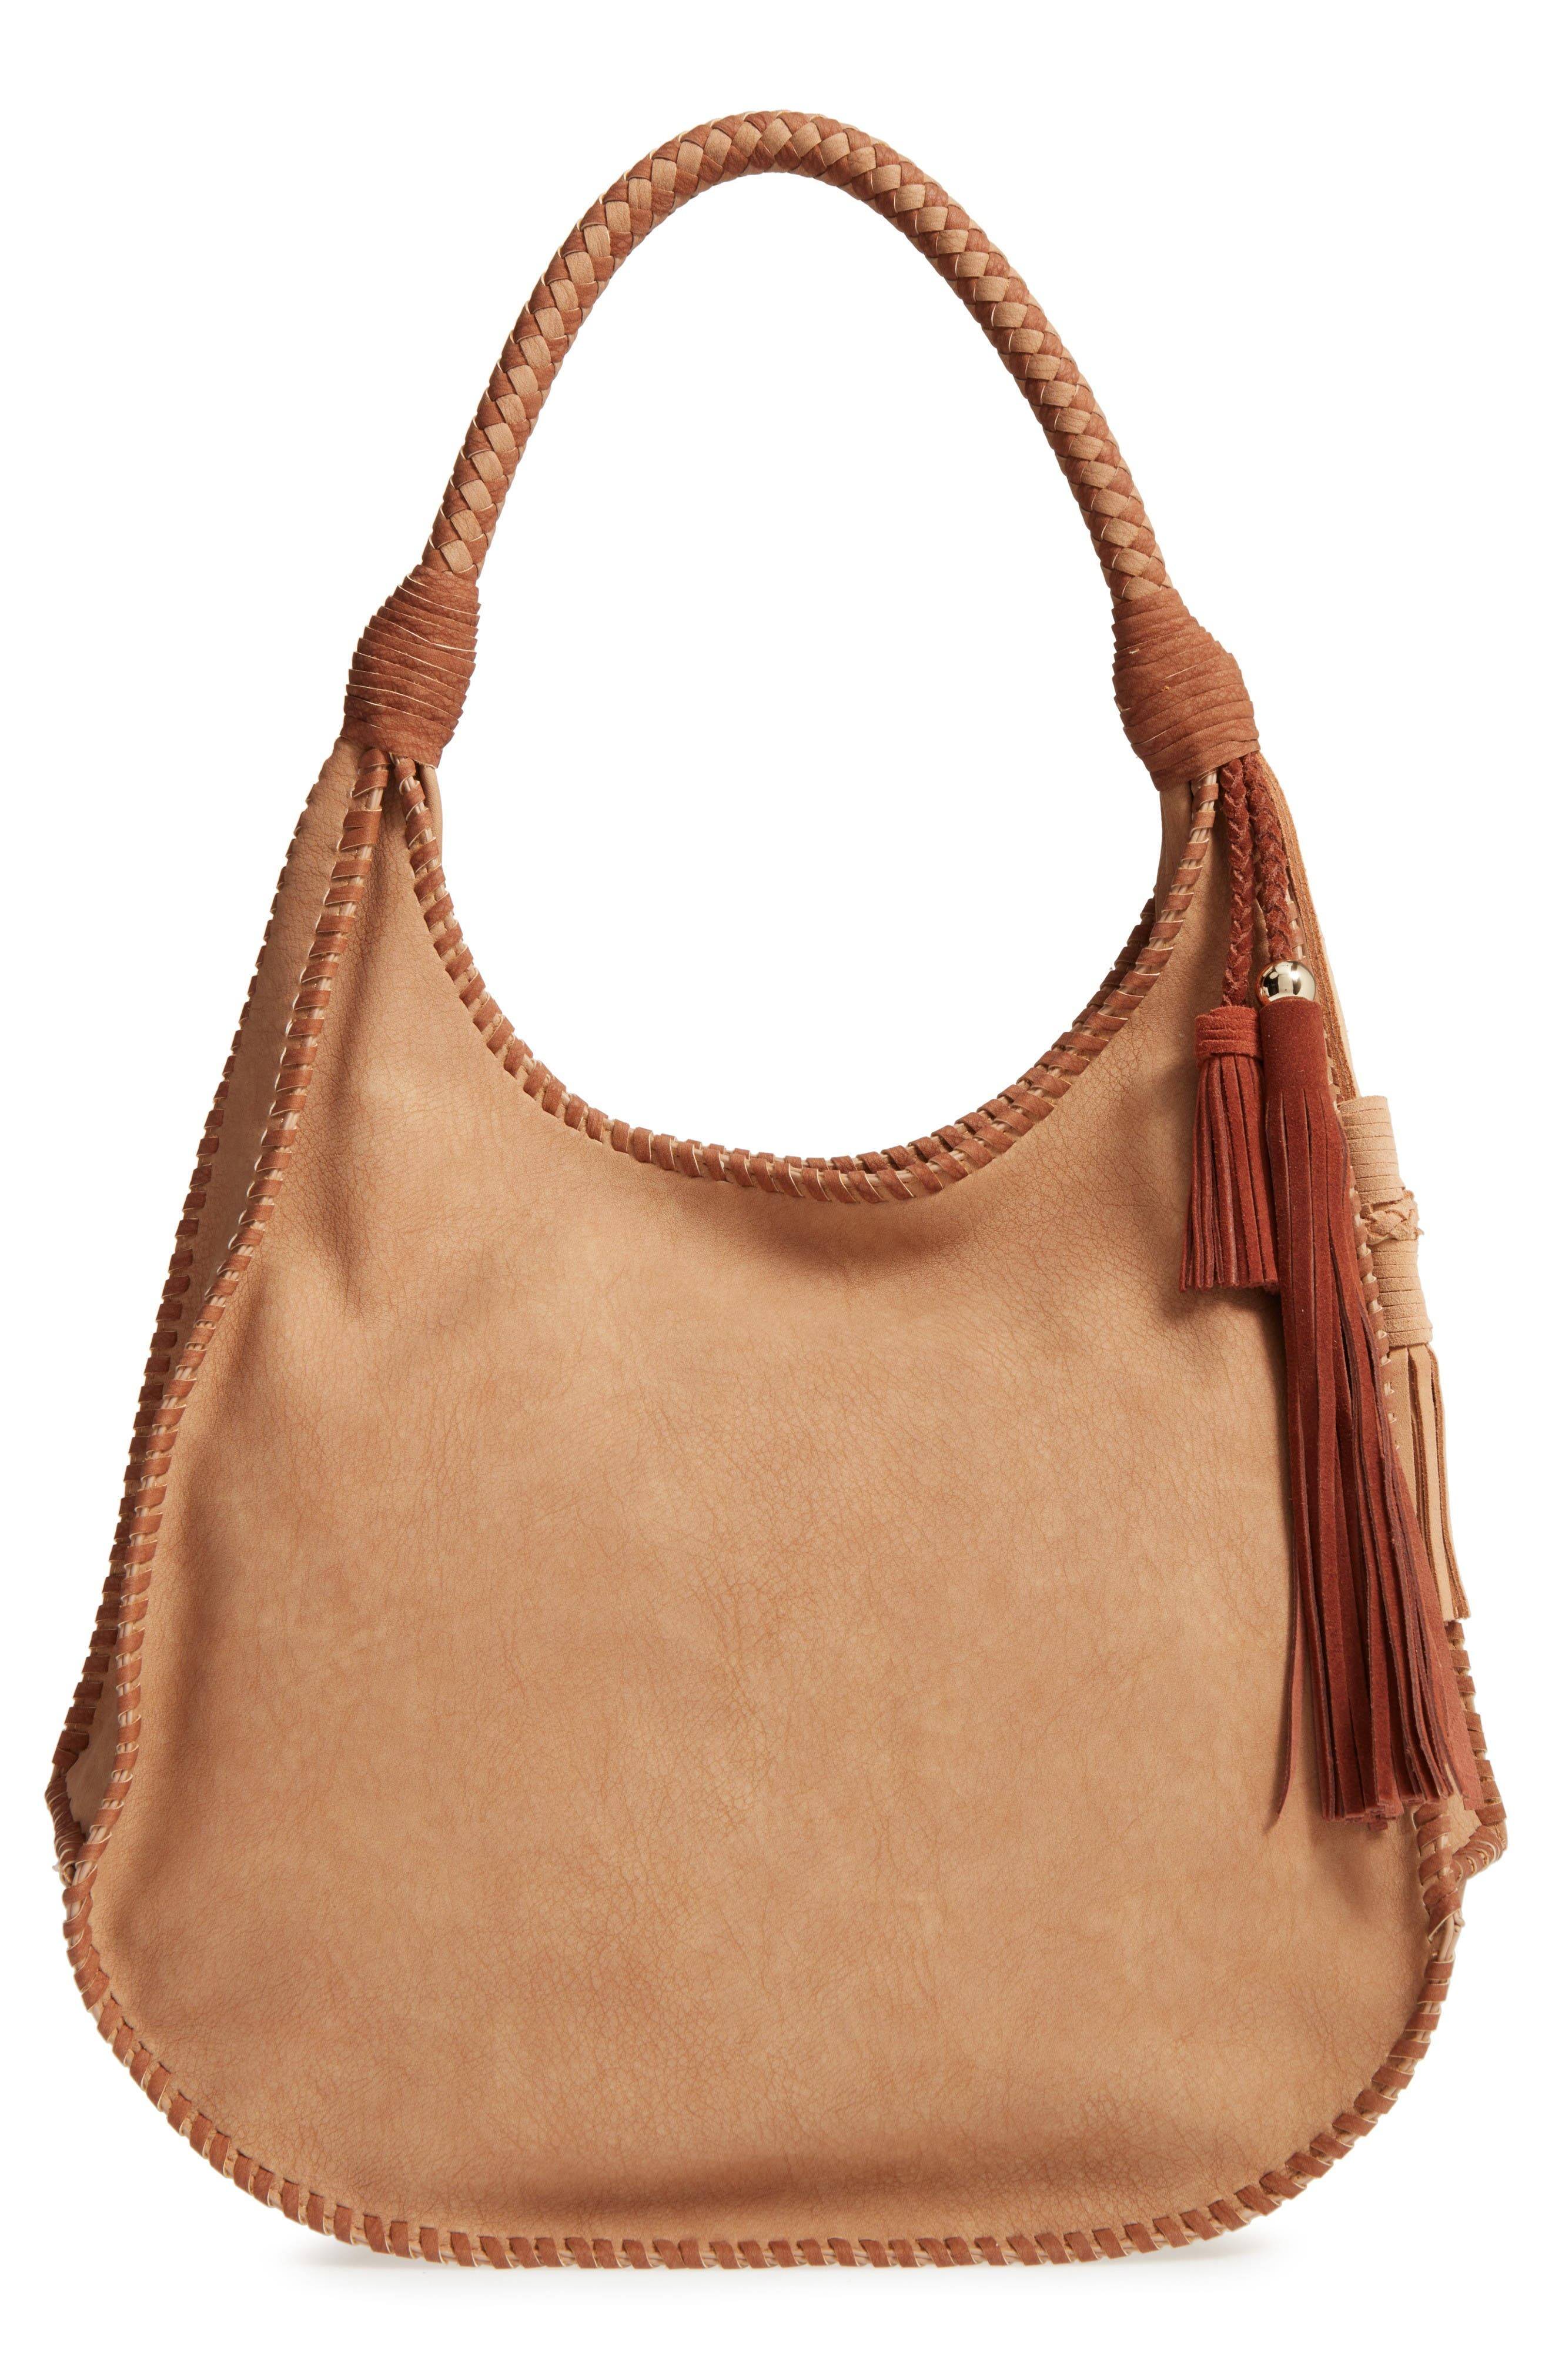 Steven by Steve Madden Faux Leather Hobo